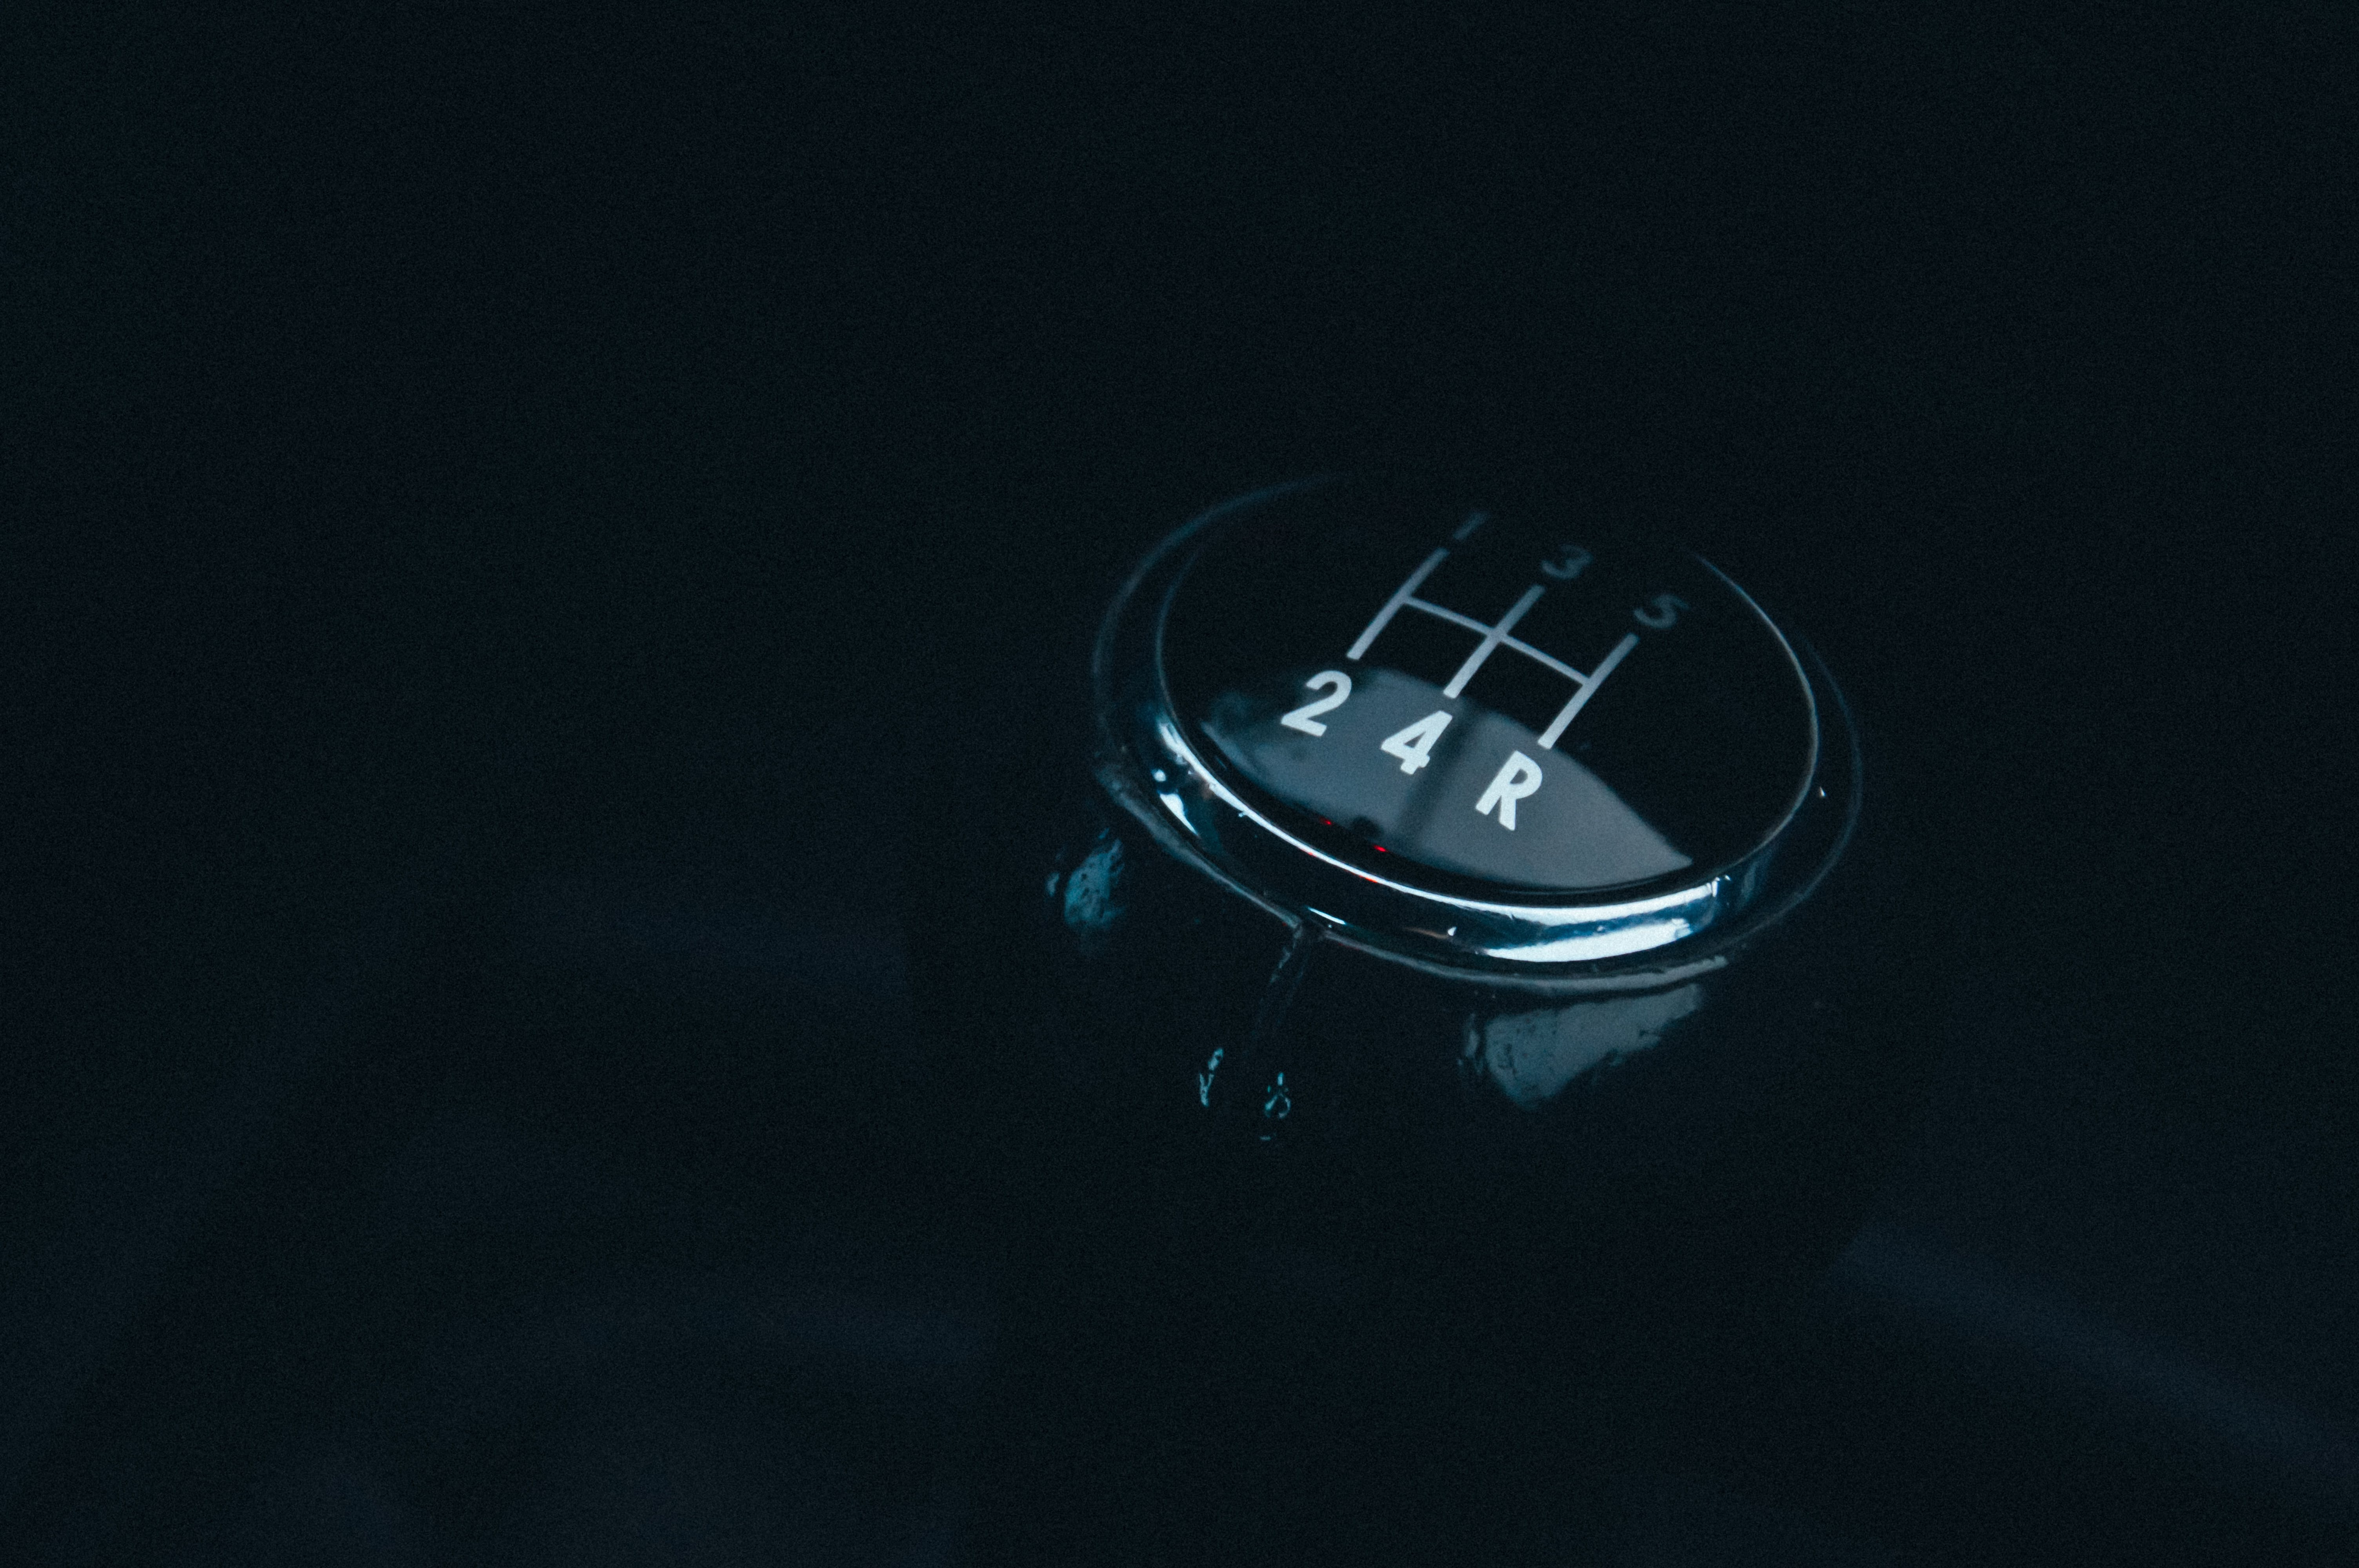 Closeup Photography of Vehicle Gear Shift Lever